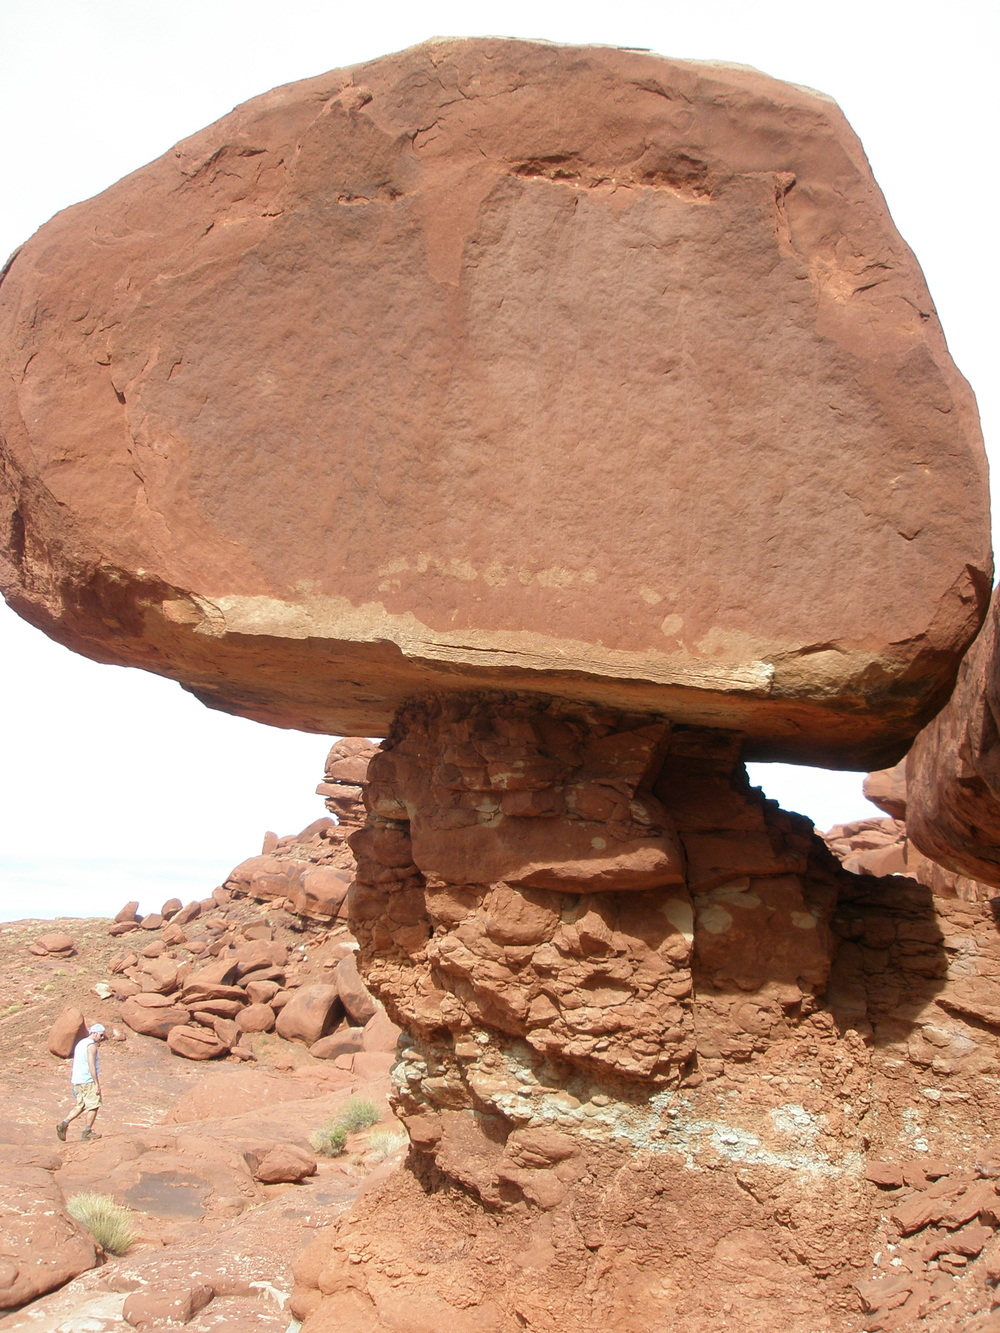 An October round near Moab, where the holes perch on red rock overlooking the Colorado River.